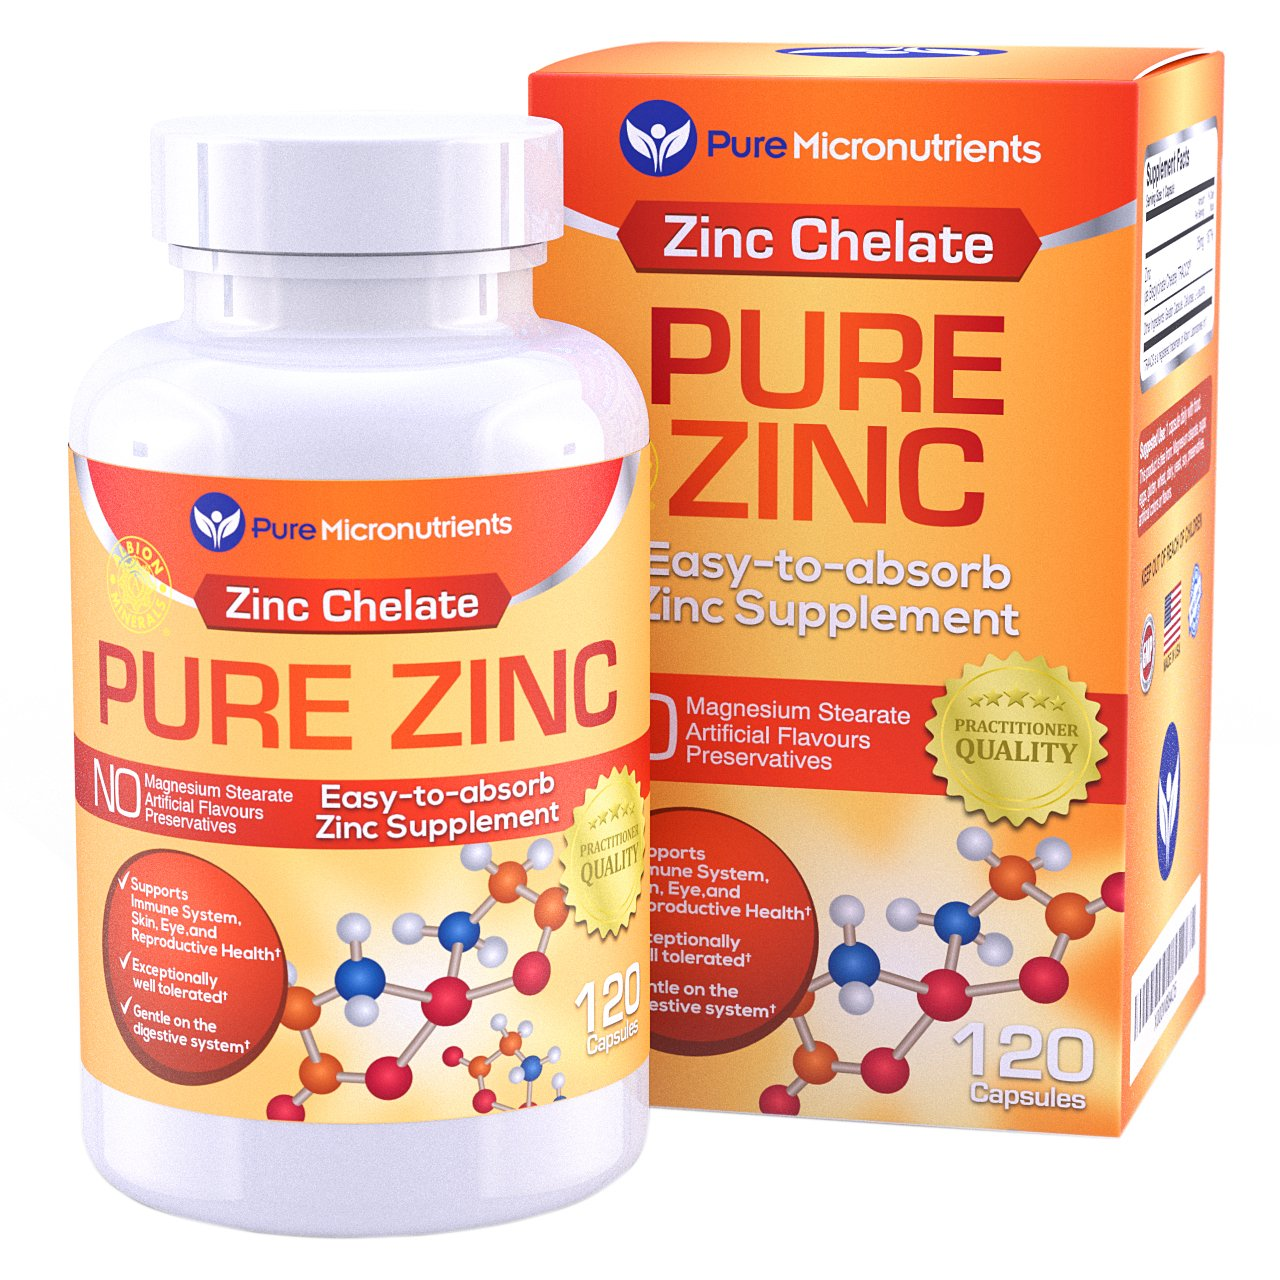 Zinc chelate for acne